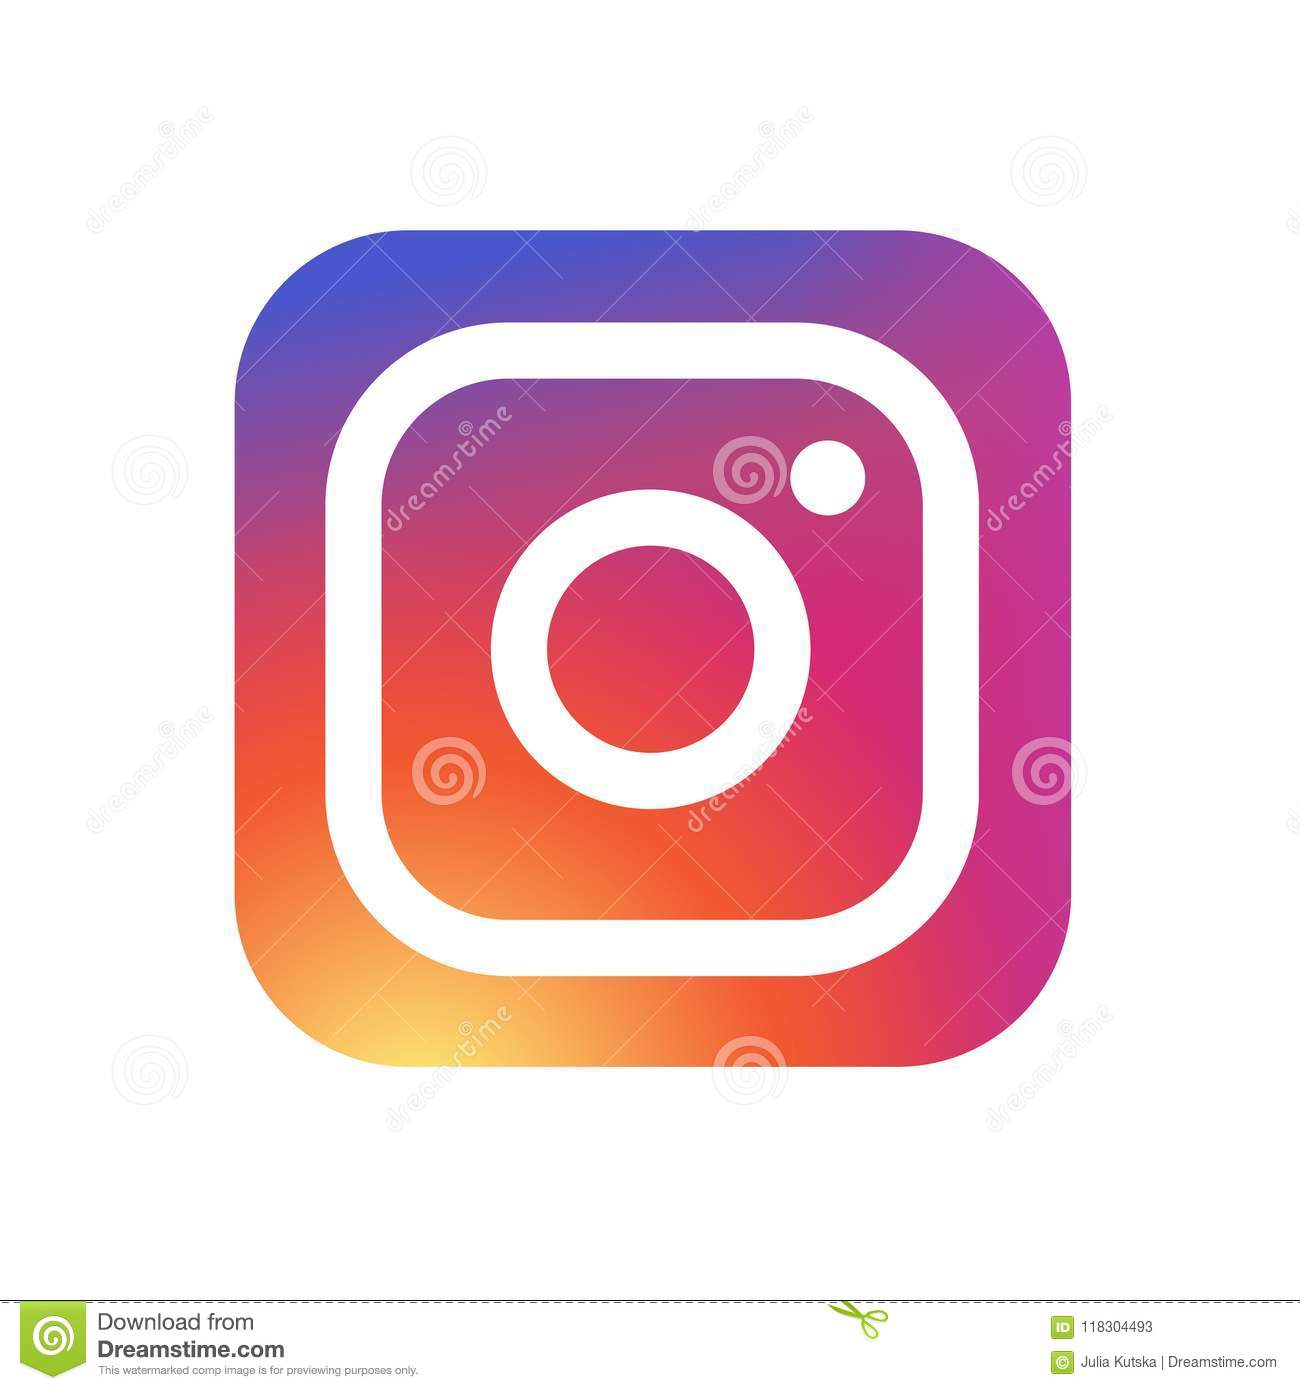 how to download instagram videos 2018